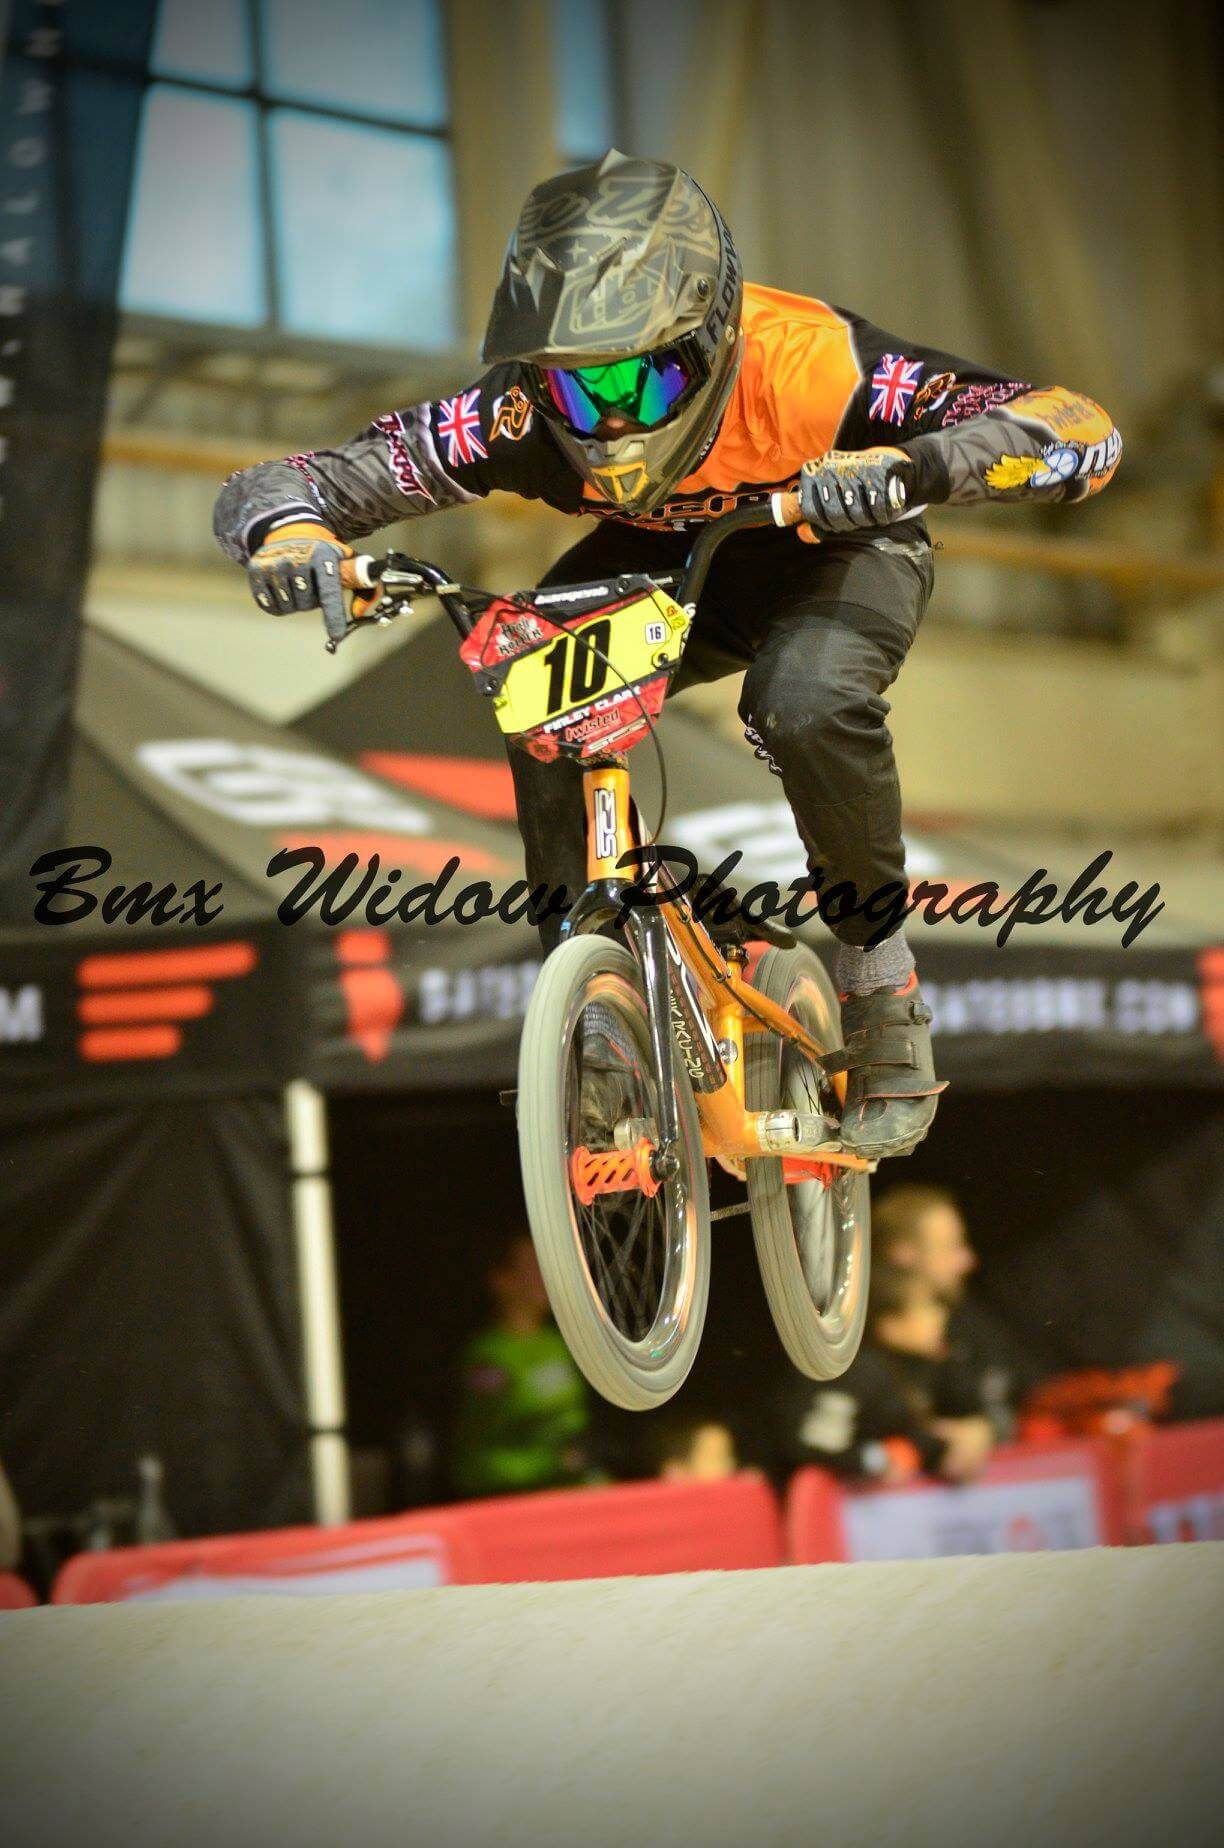 Twisted Concepts - Manchester - BMX Widow - i08